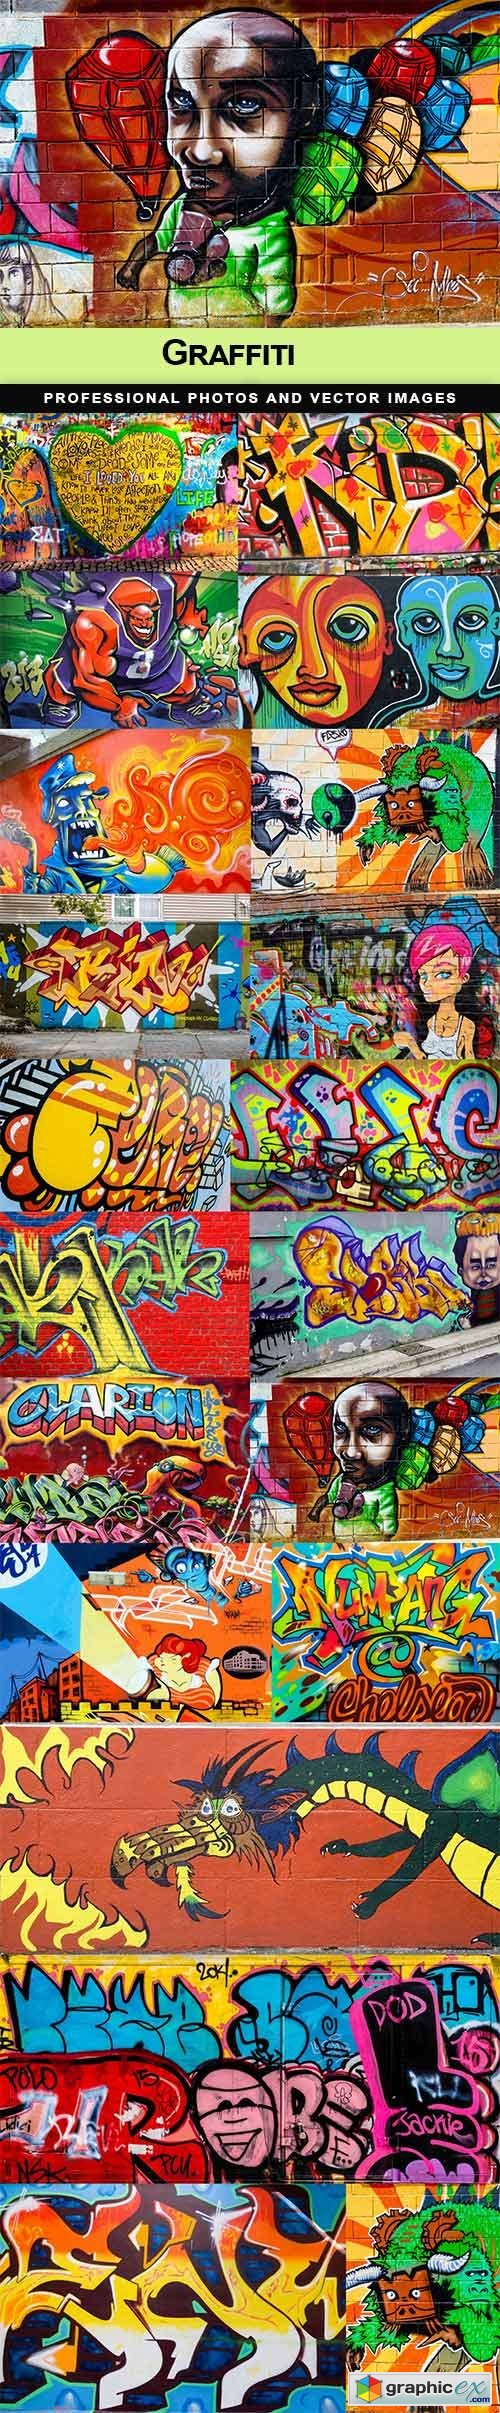 Graffiti - 20 UHQ JPEG